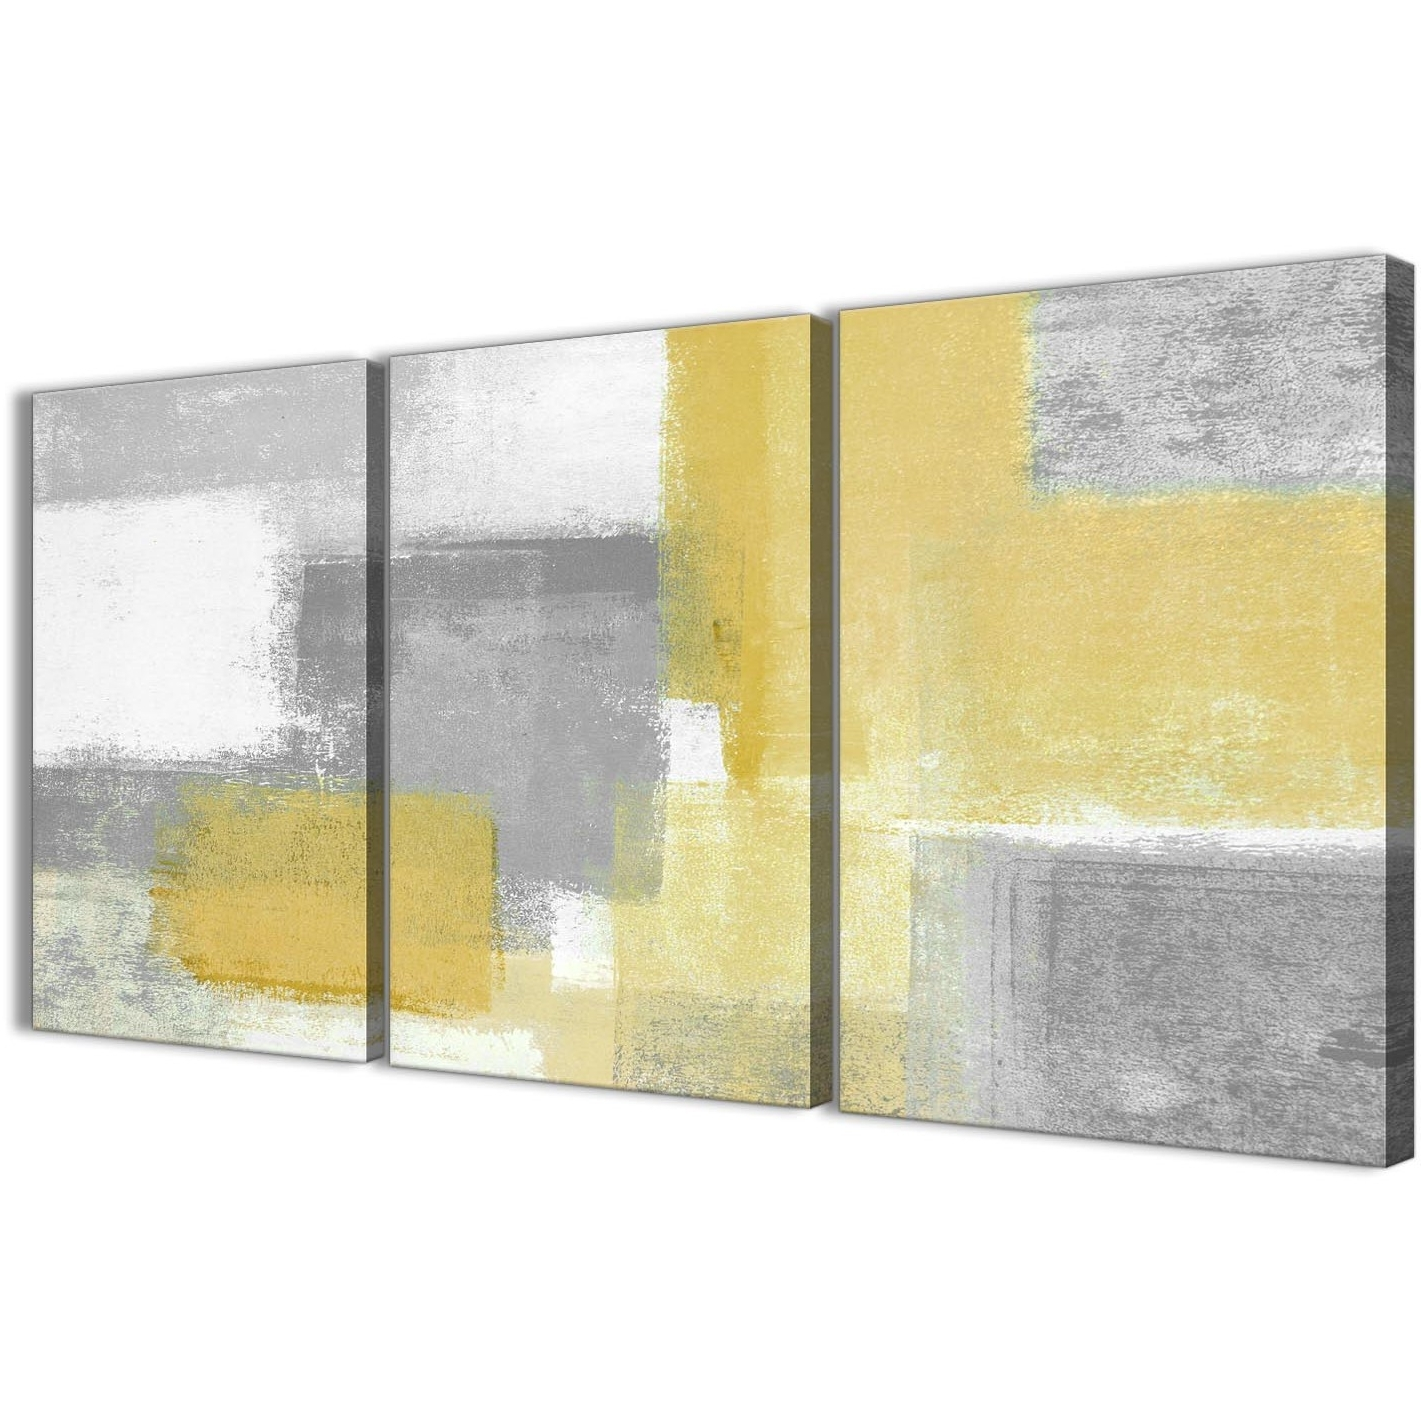 Trendy 3 Panel Mustard Yellow Grey Kitchen Canvas Wall Art Decor – Abstract Regarding 3 Piece Canvas Wall Art (View 12 of 15)